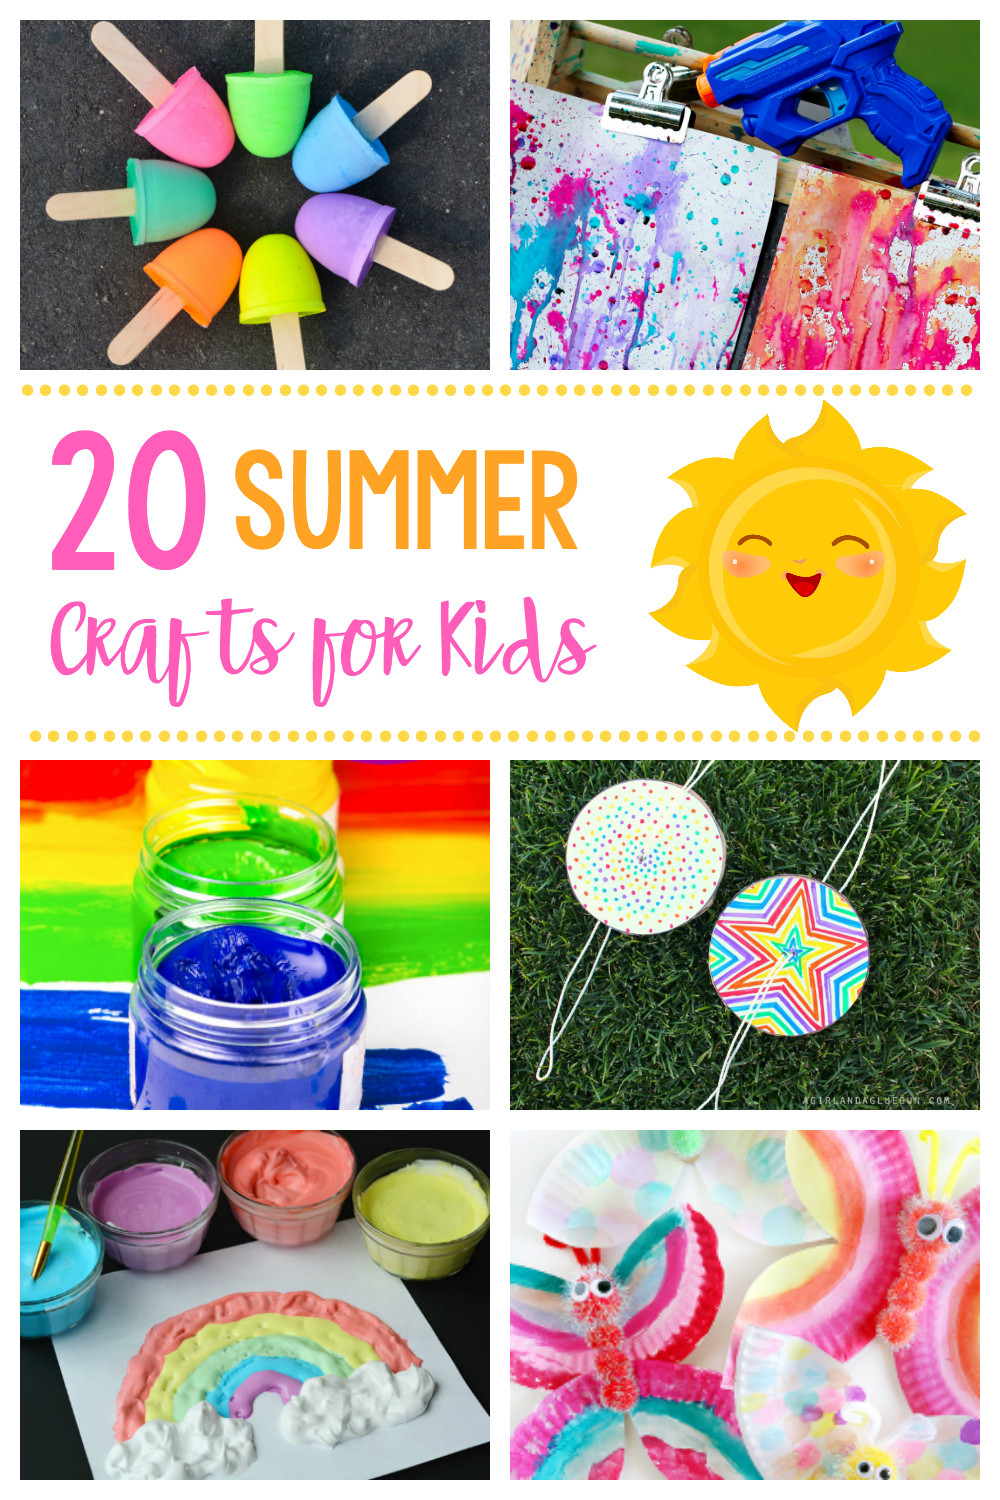 Easy Craft Ideas For Kids  20 Simple & Fun Summer Crafts for Kids